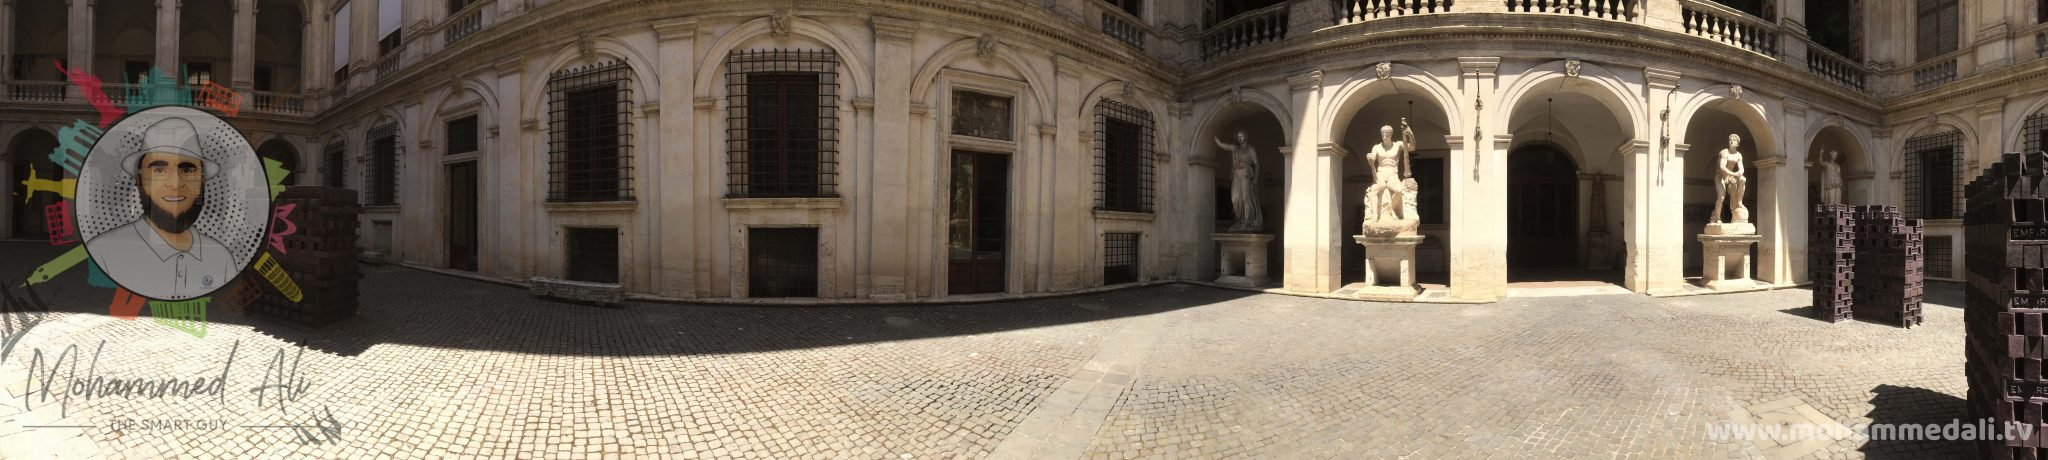 Panoramic view of Palazzo Altempts in Rome